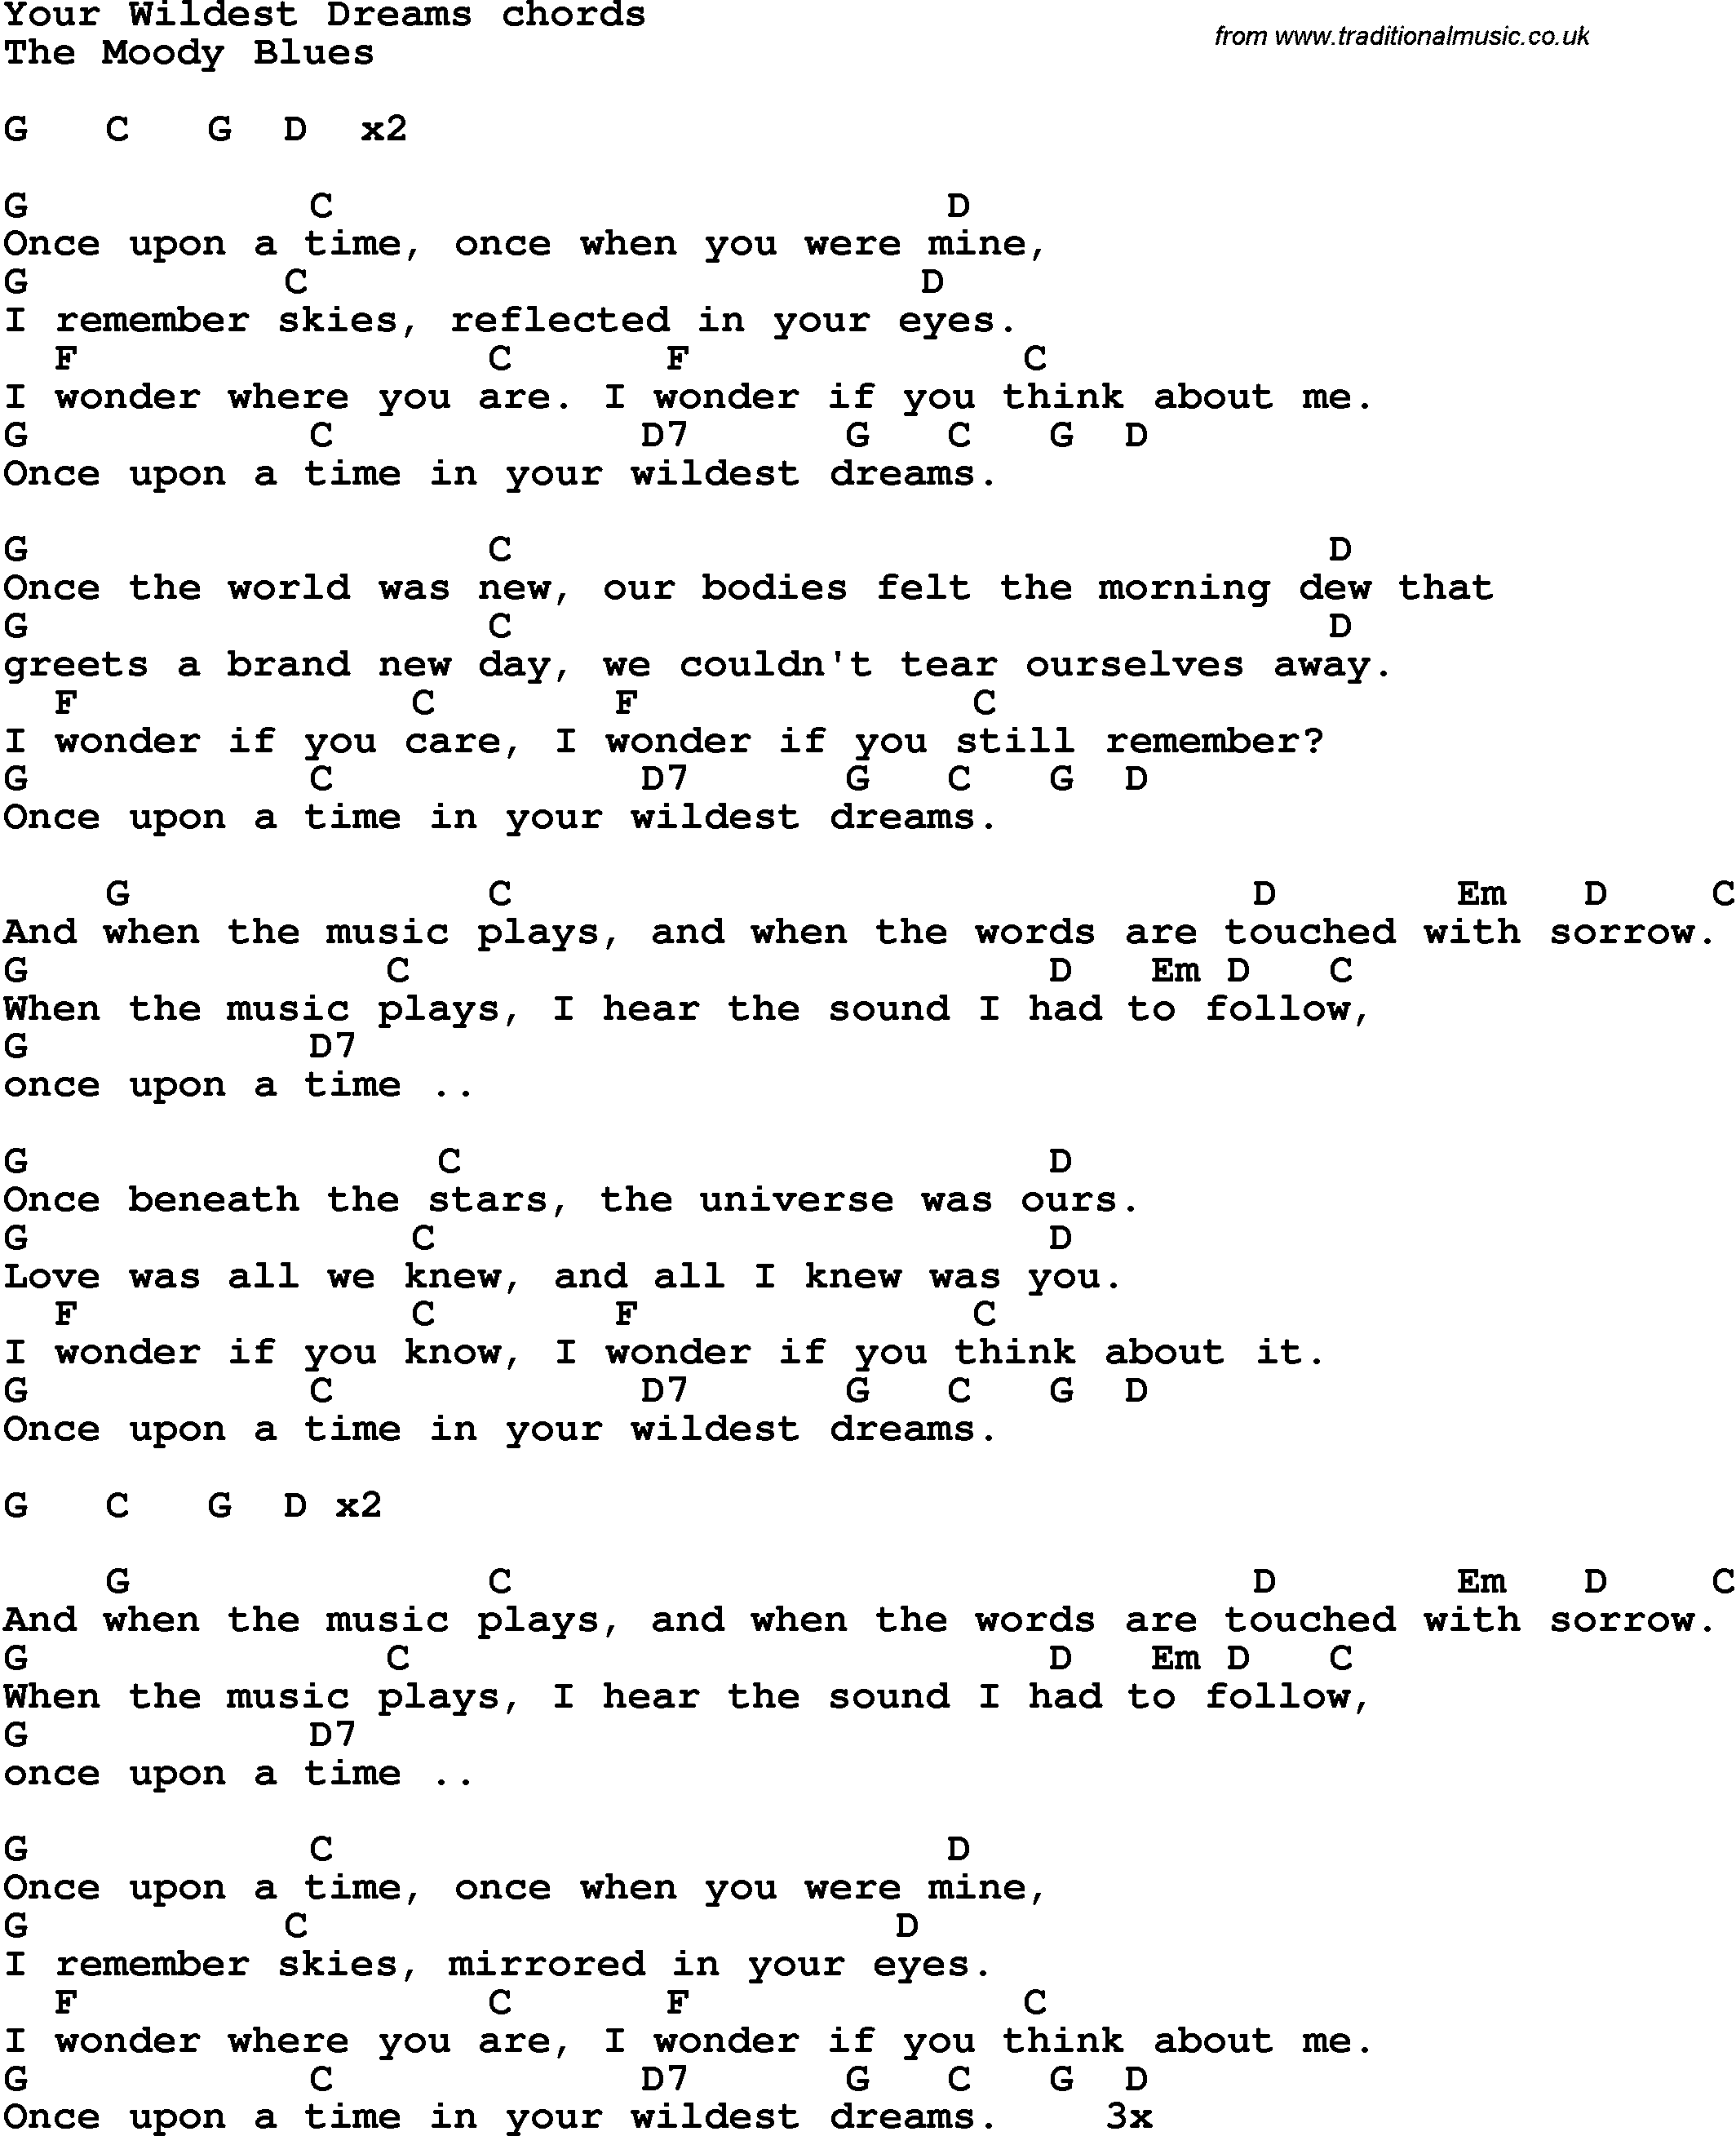 Song Lyrics With Guitar Chords For Your Wildest Dreams